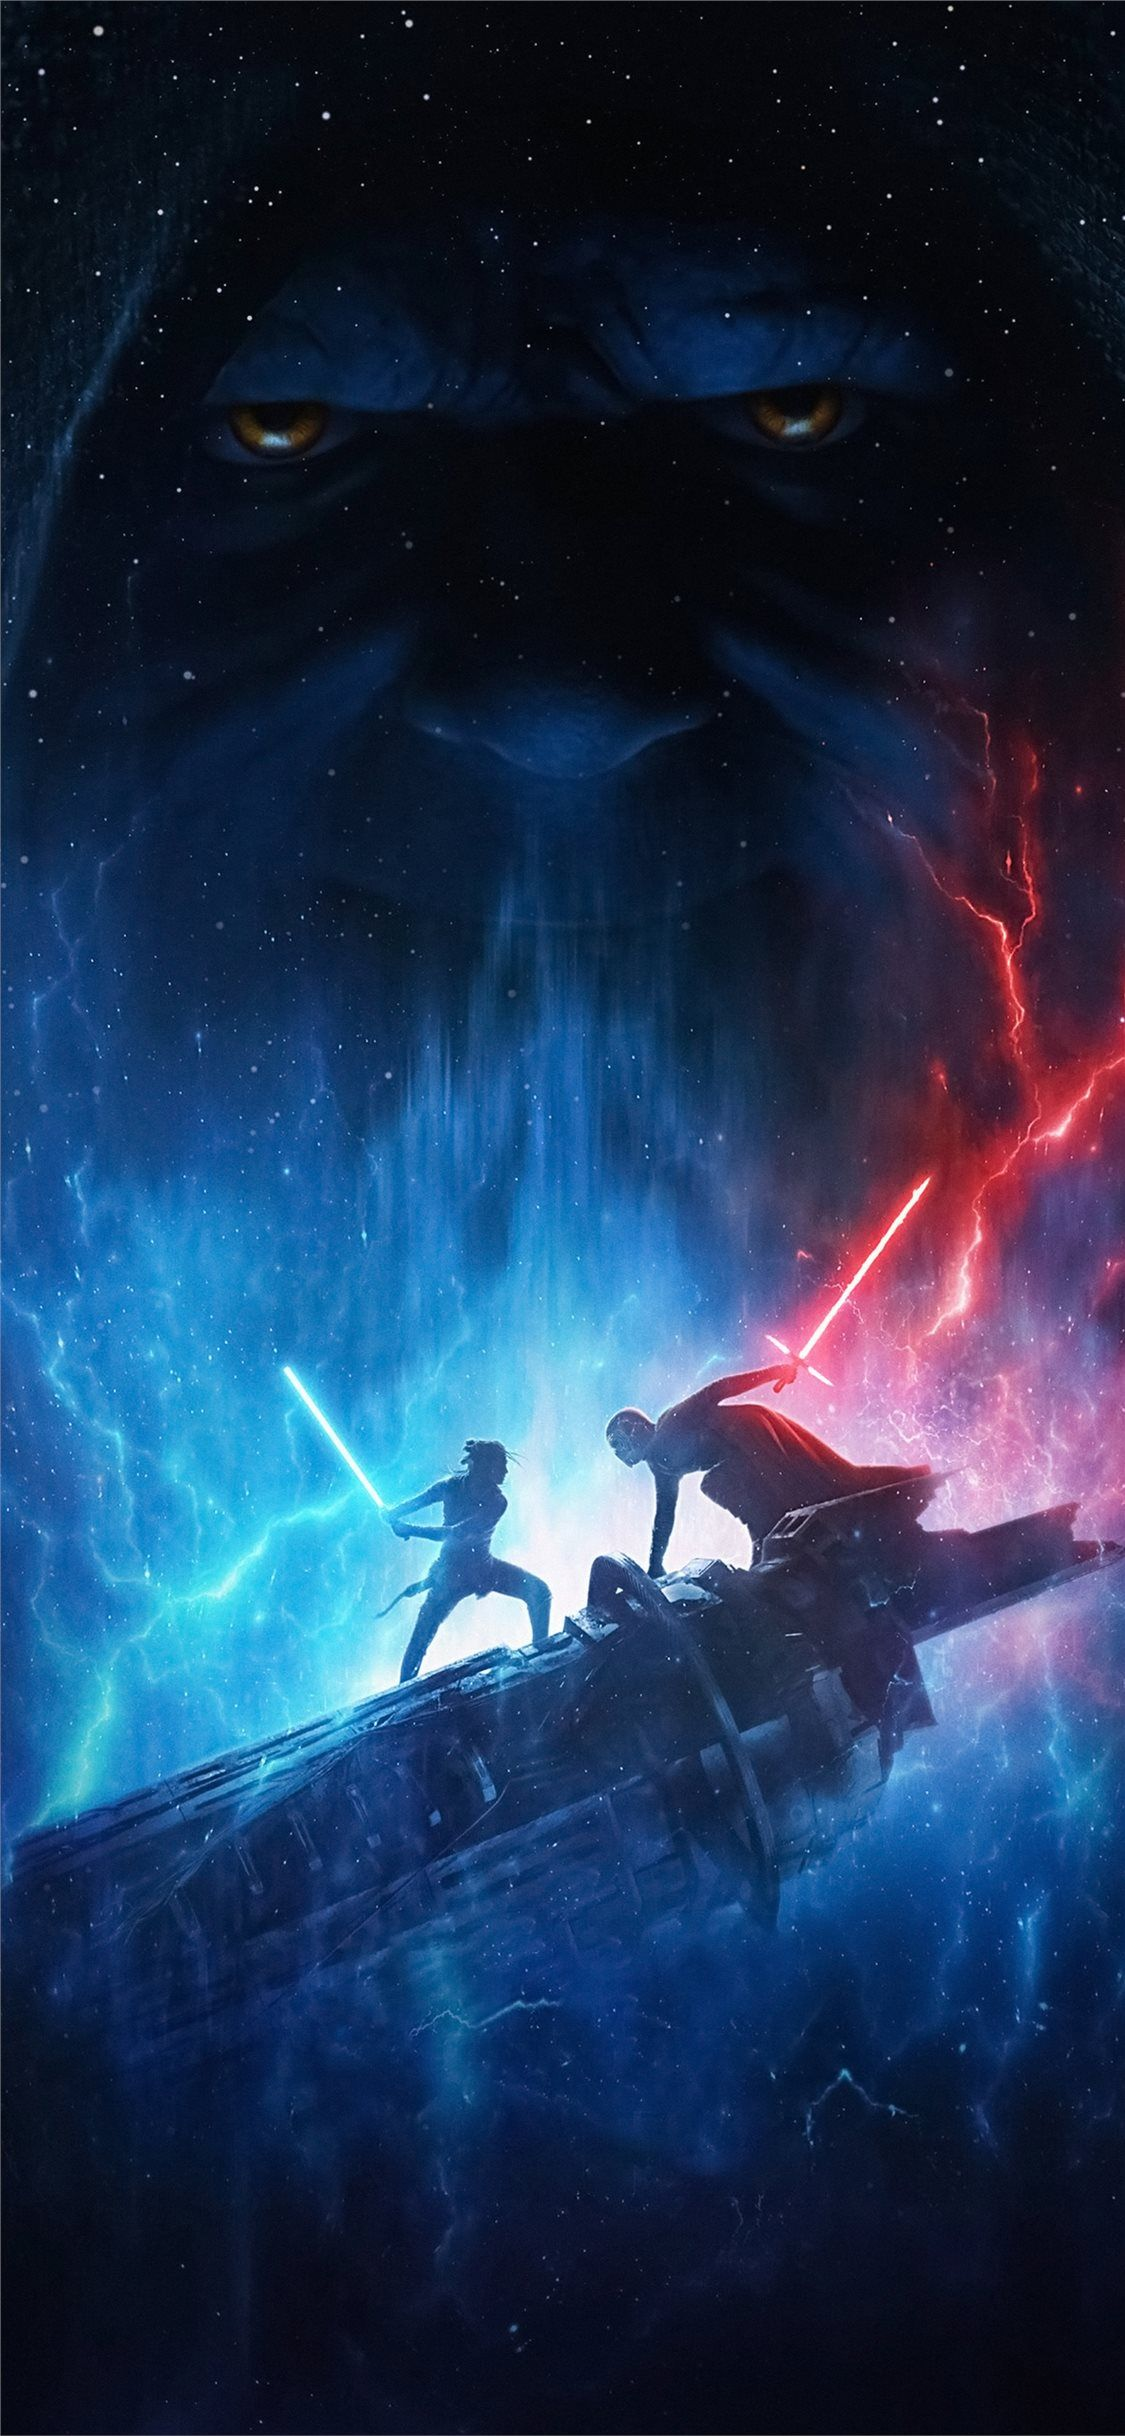 Free Download The Star Wars The Rise Of Skywalker 2019 4k